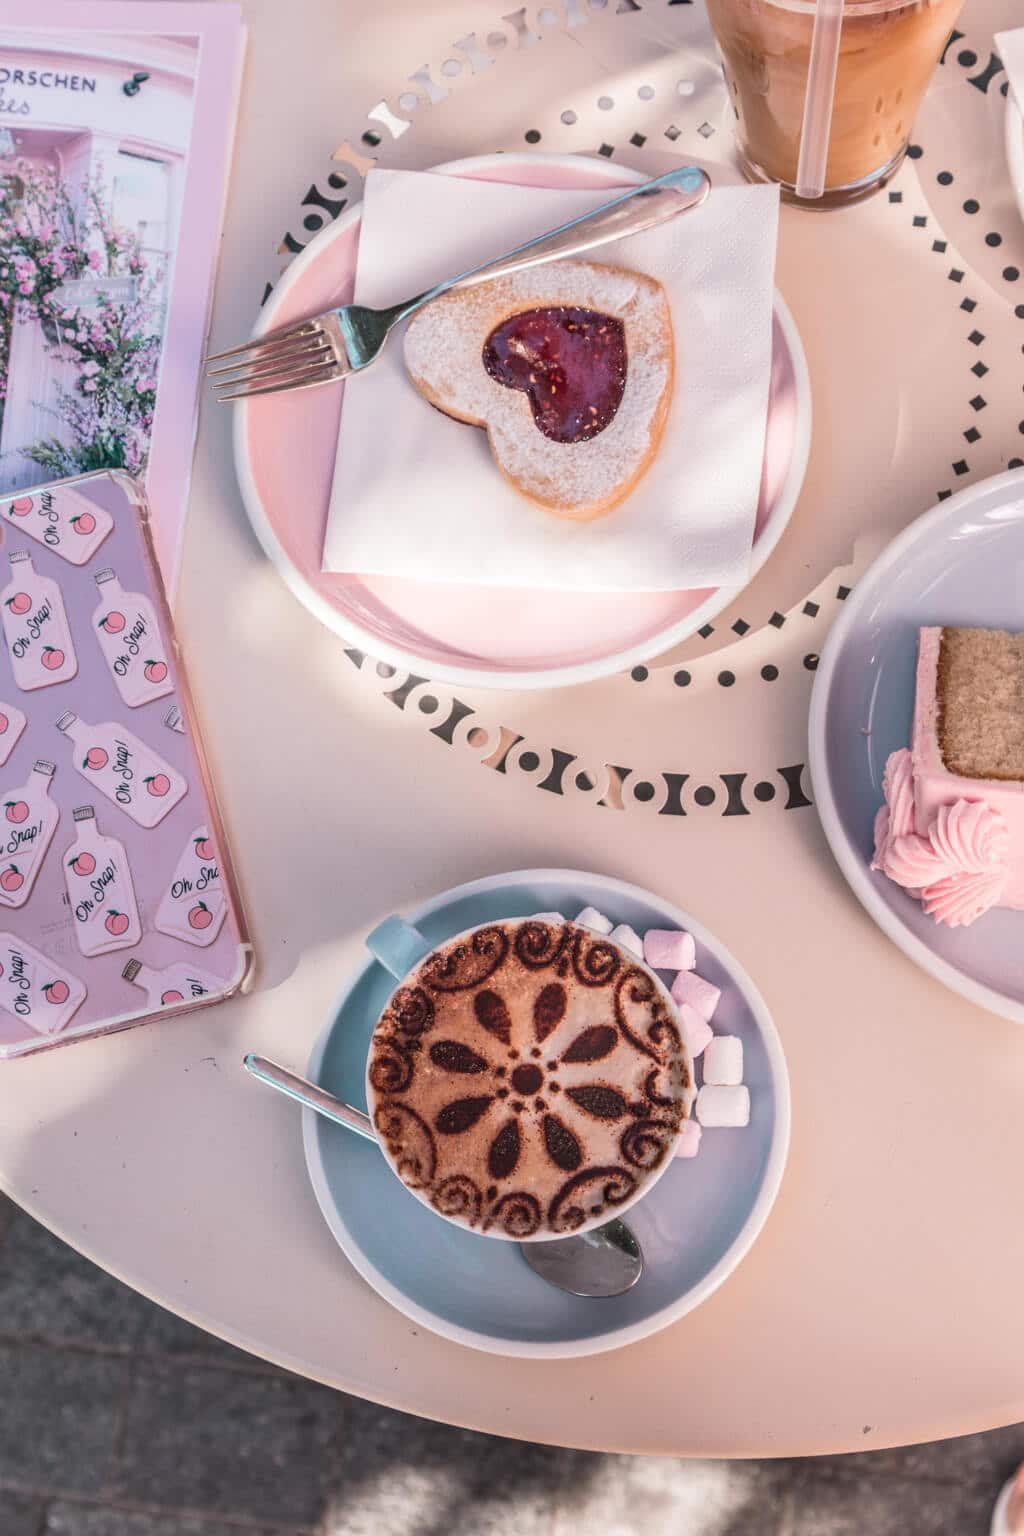 London food guide - my recommendations for restaurants and street food in the capital of England. | PEGGY PORSCHEN CAKES